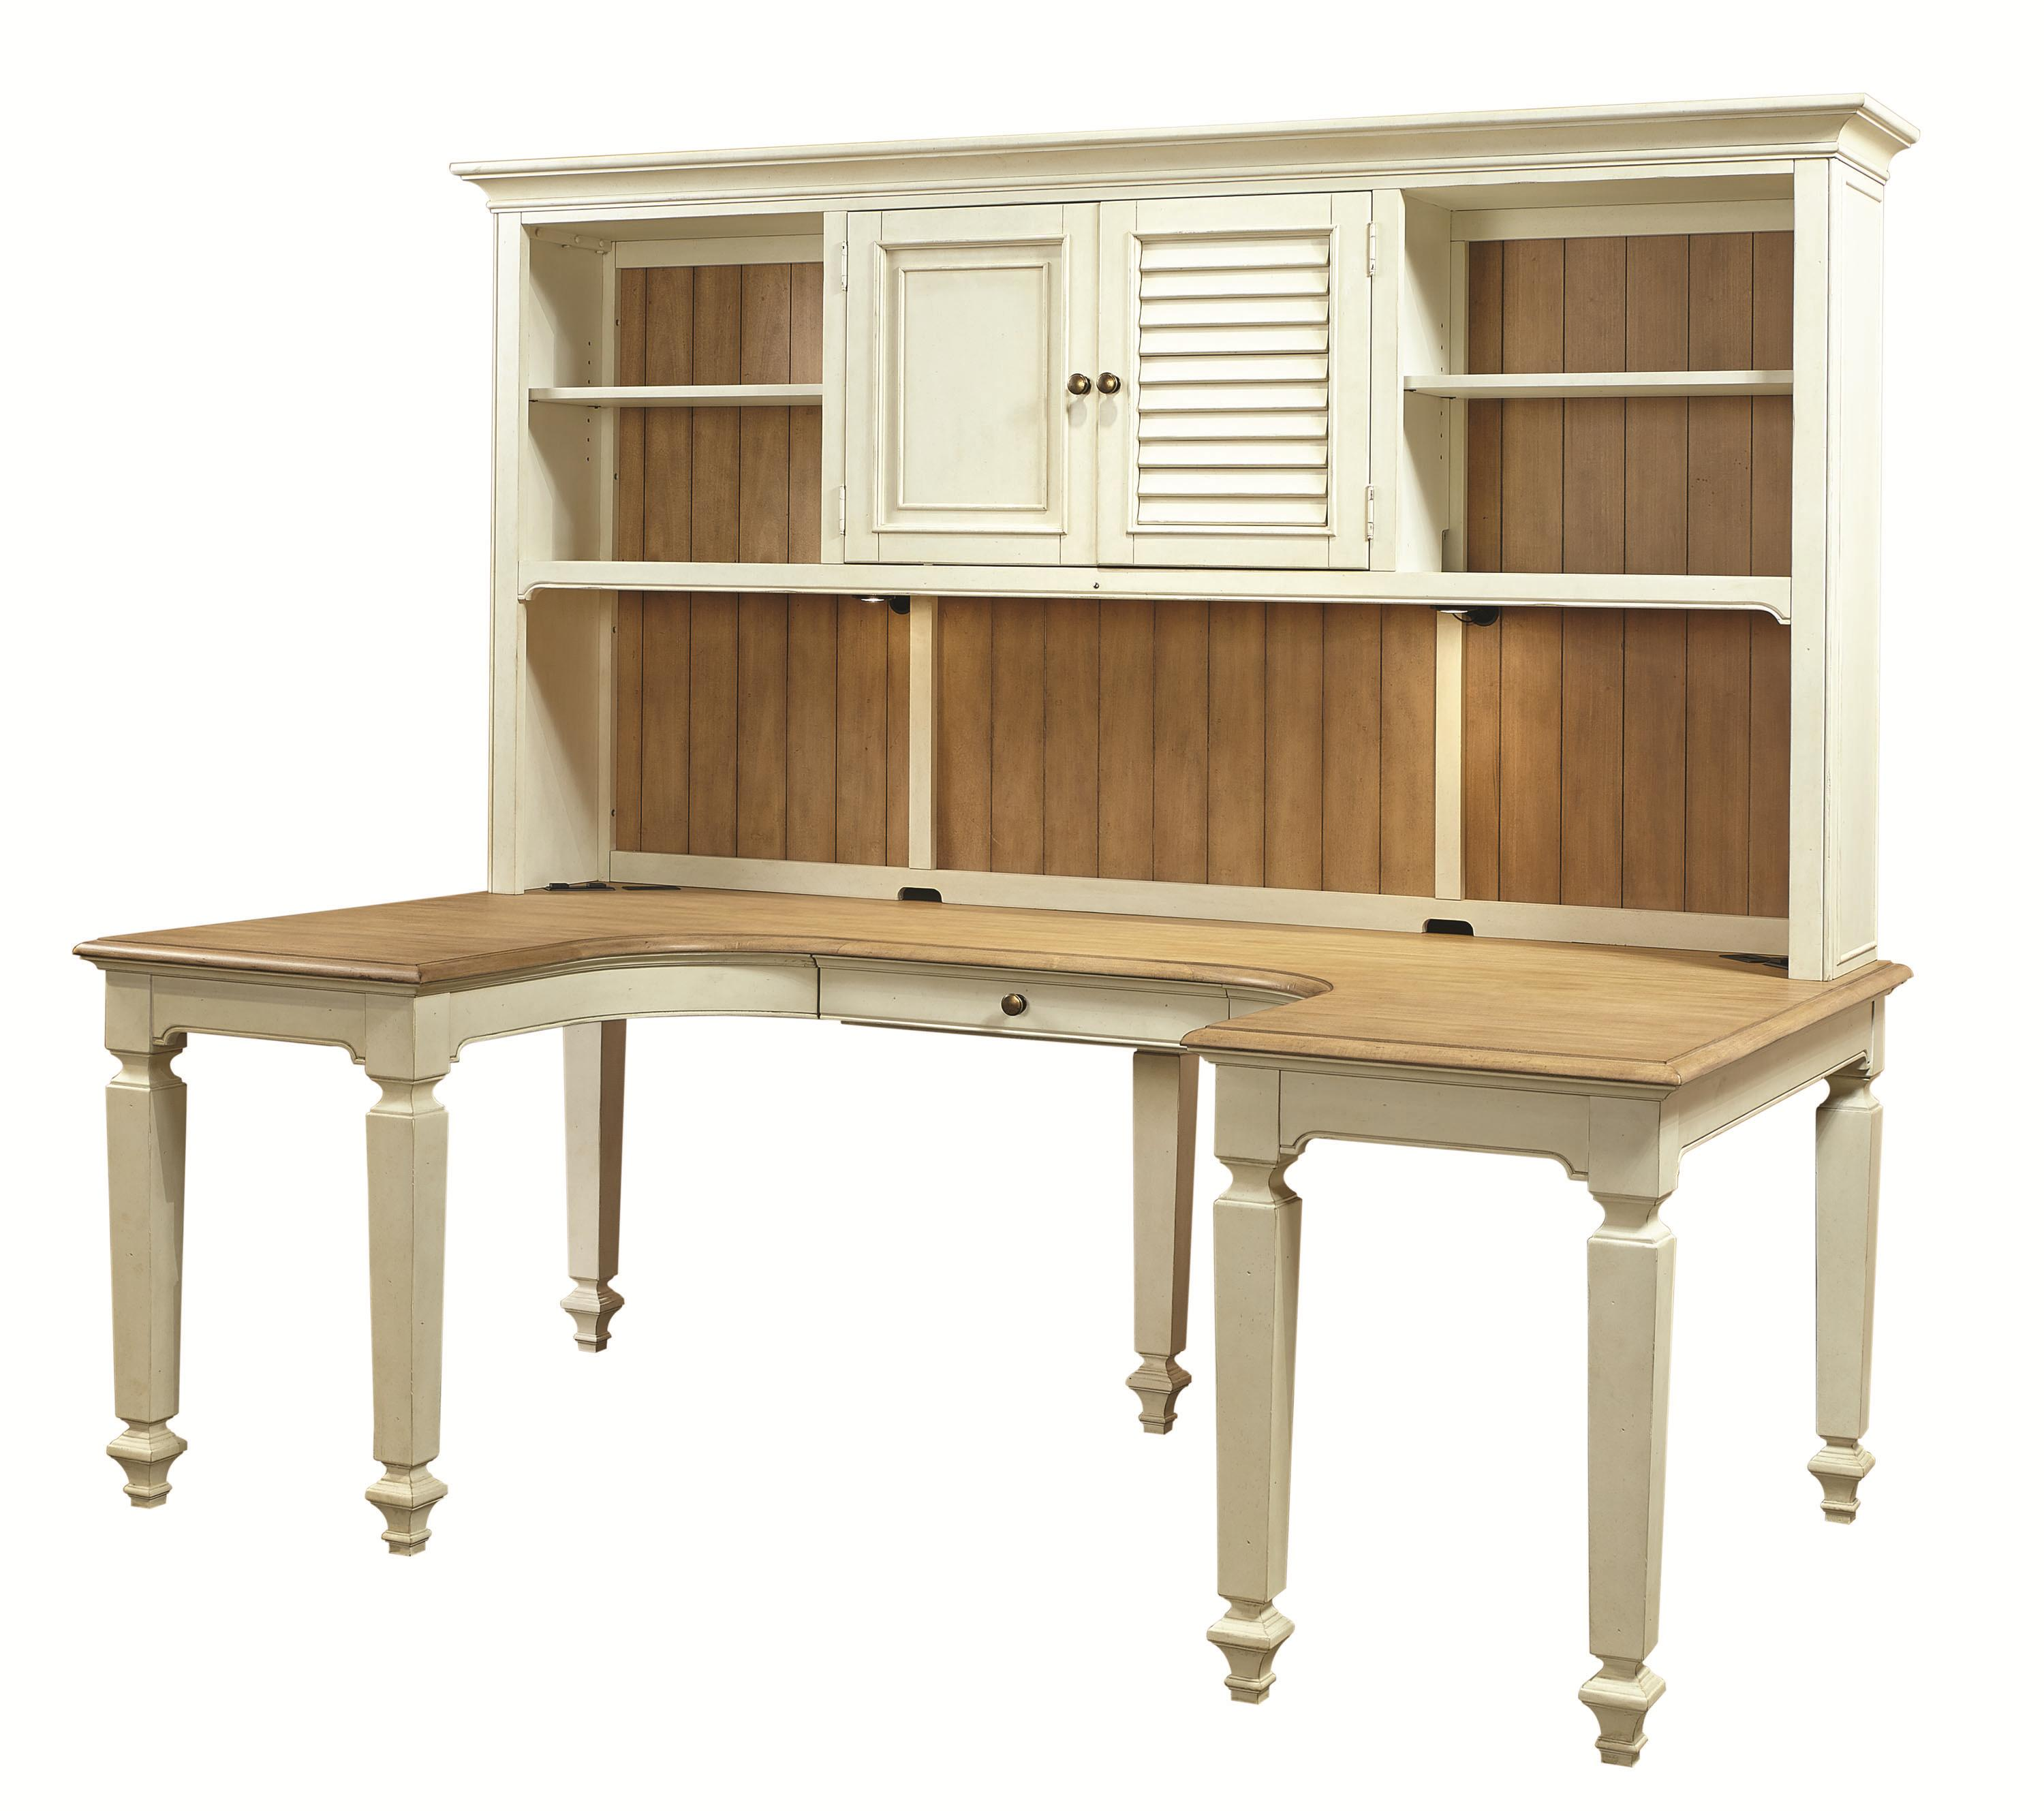 Aspenhome Cottonwood Desk and Hutch - Item Number: I67-385+380H